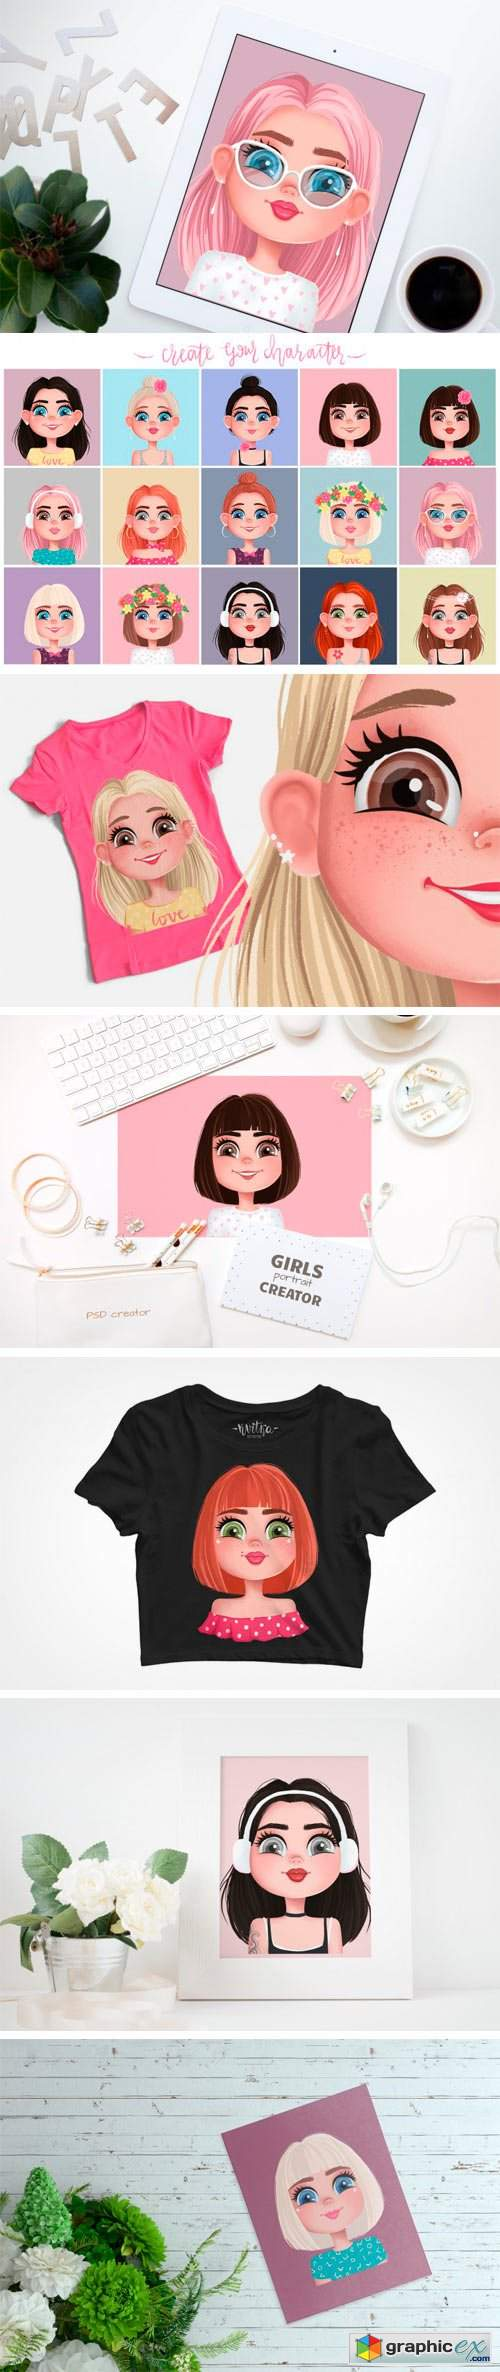 Girls Portrait Creator!